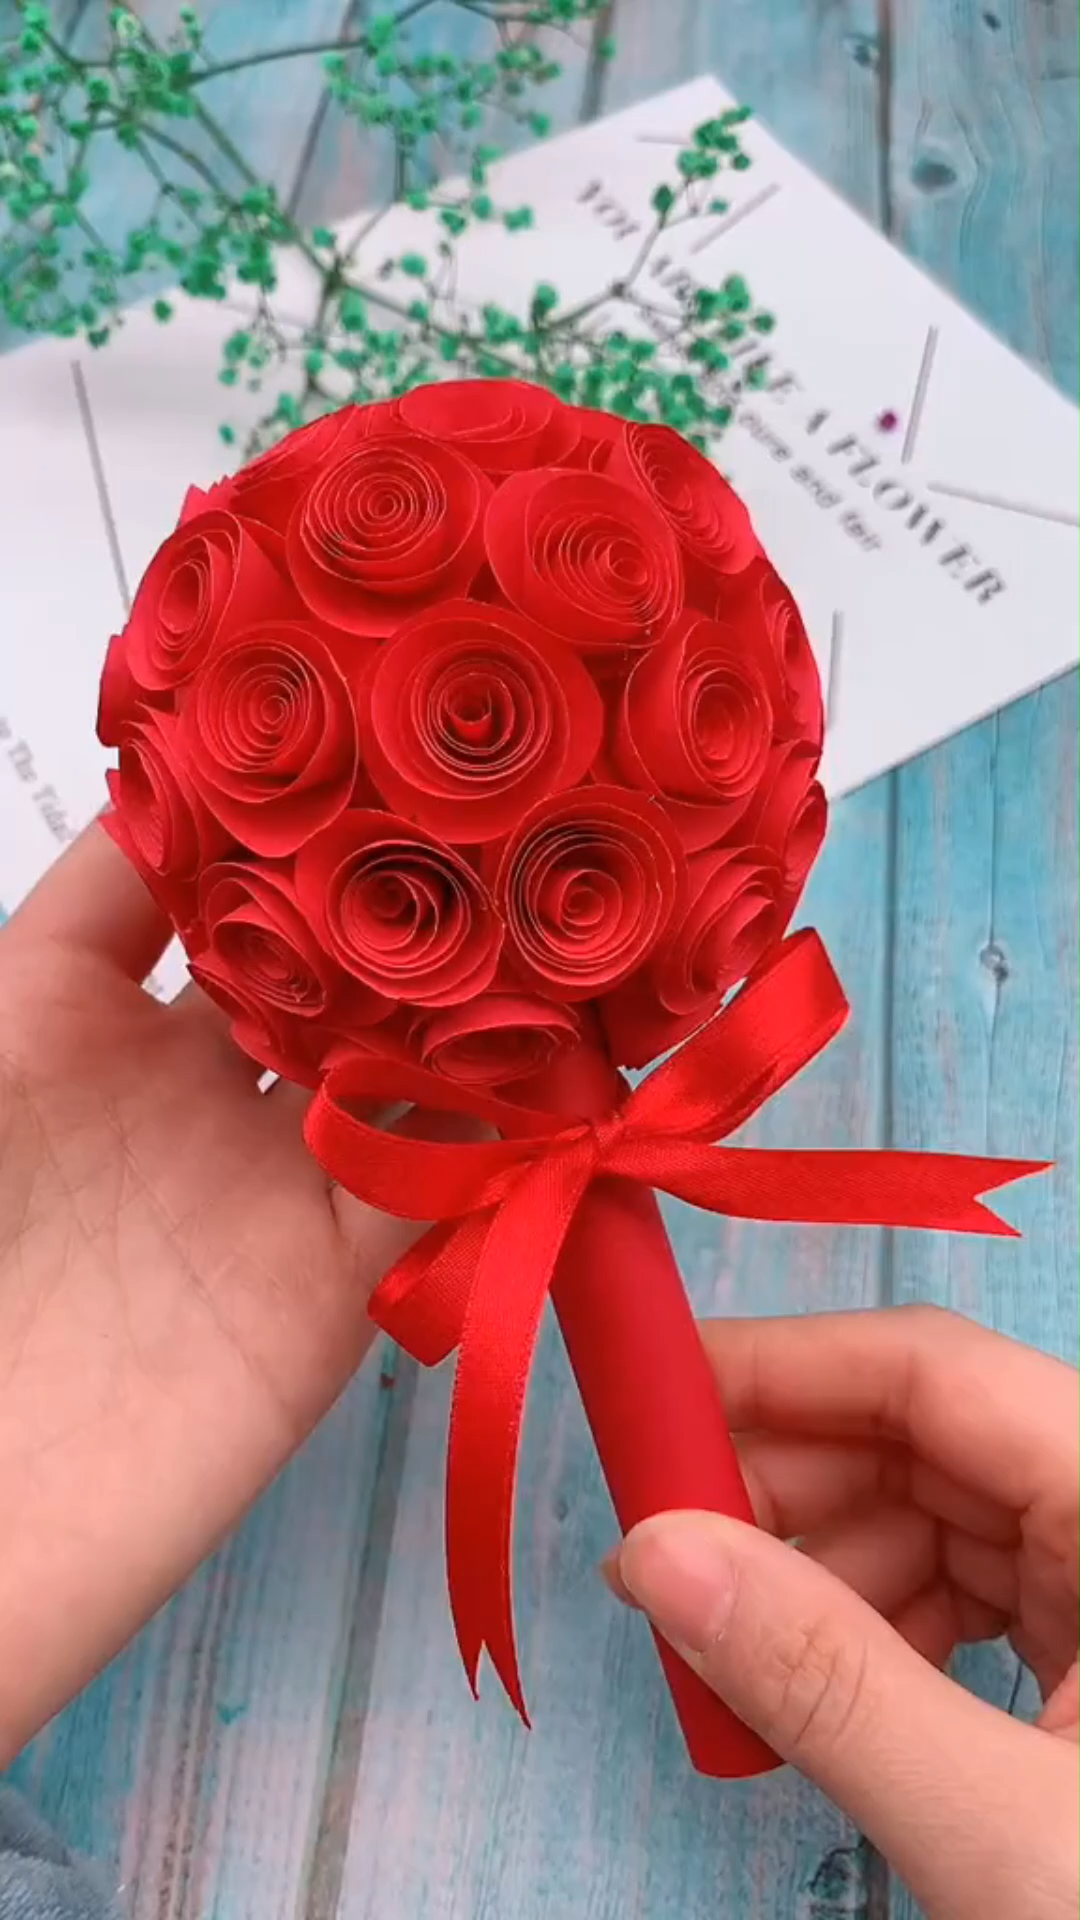 Diy Foam Flowers Rose Video In 2020 Paper Crafts Diy Kids Paper Crafts Flower Diy Crafts